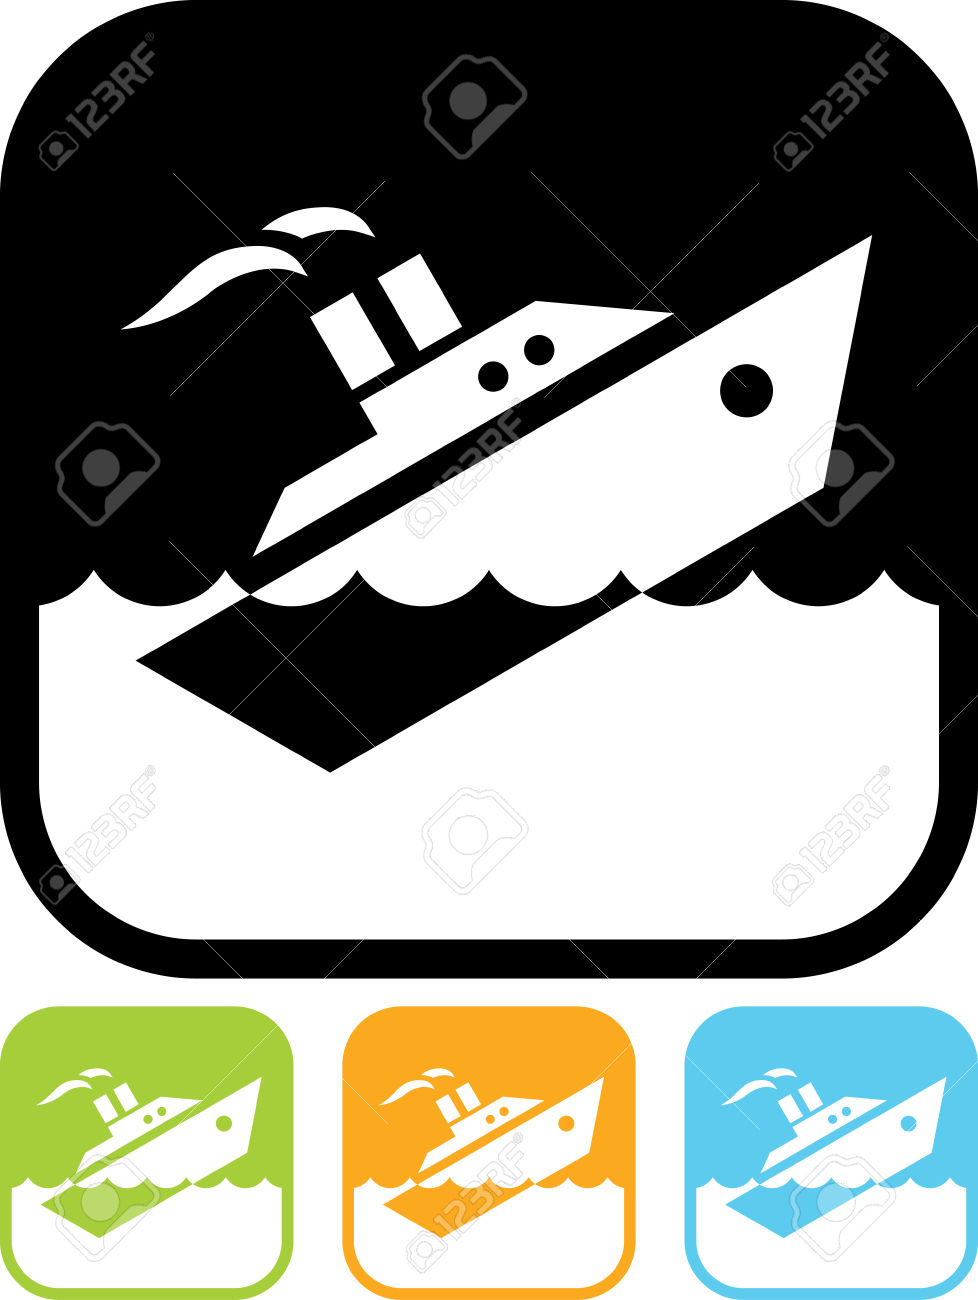 286 Boat Accident Cliparts, Stock Vector And Royalty Free Boat.